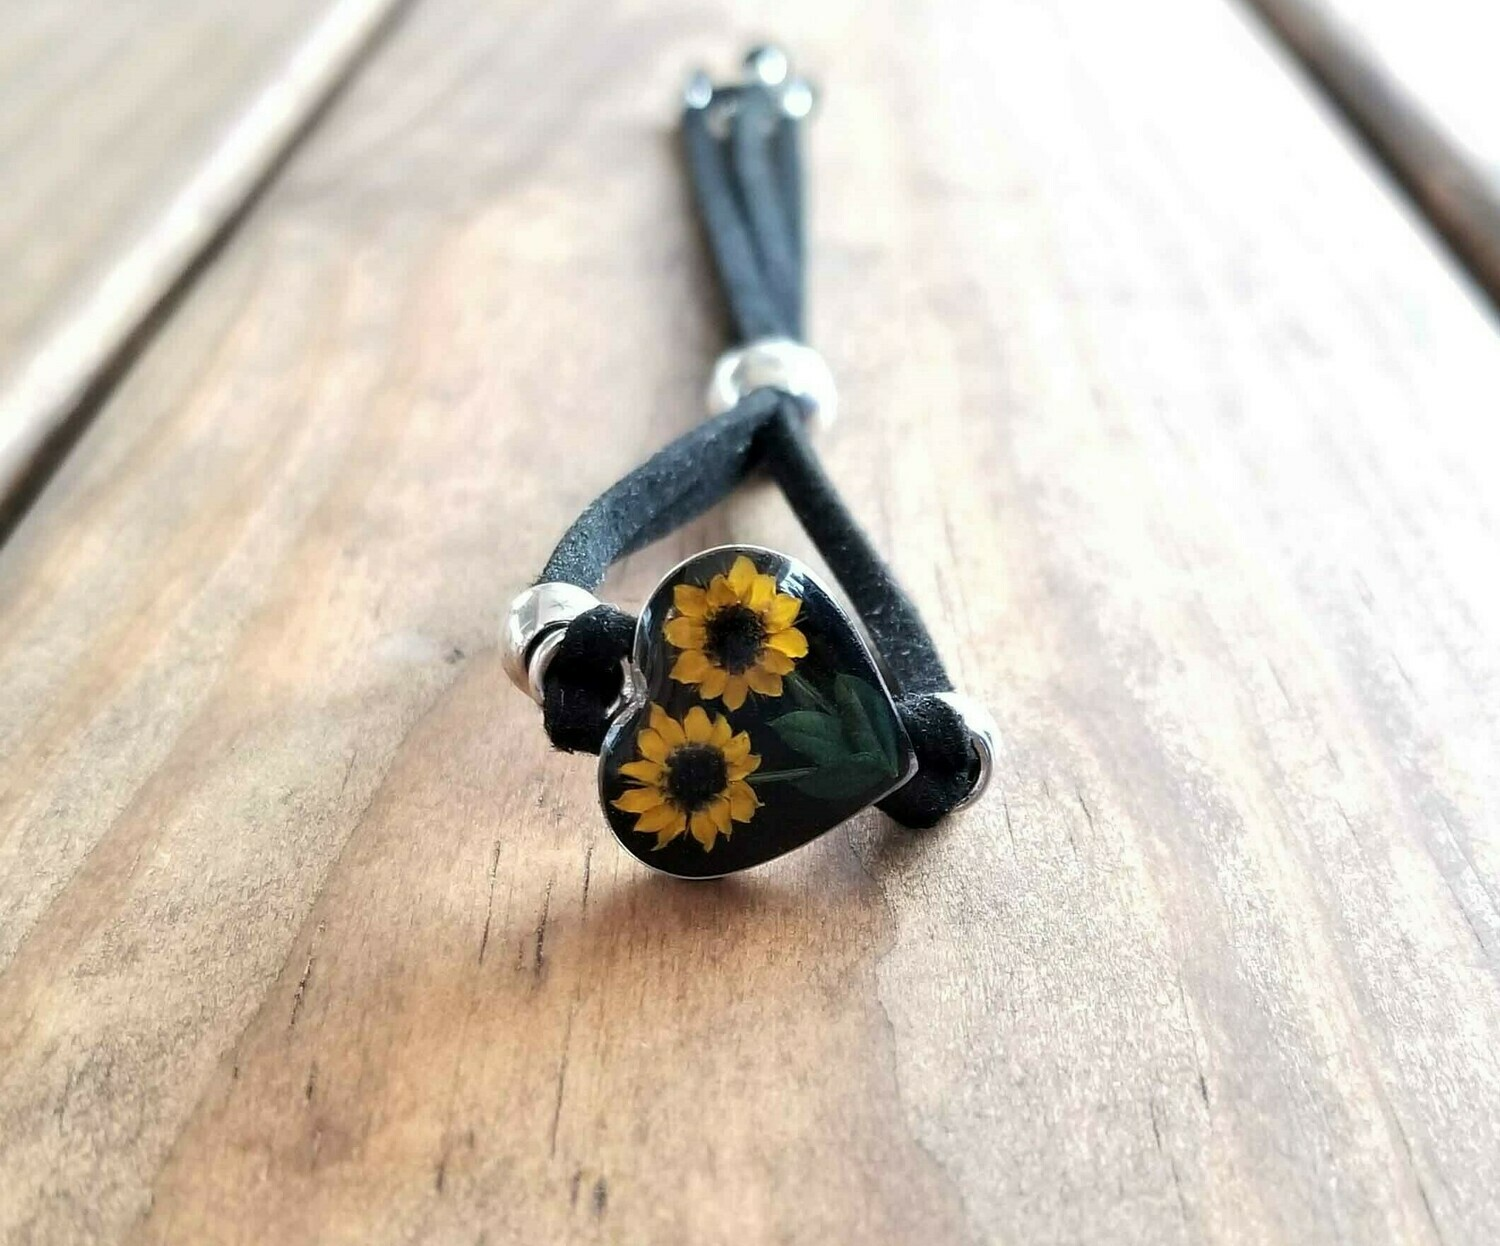 Sunflower Heart Leather Bracelet, Black Background.